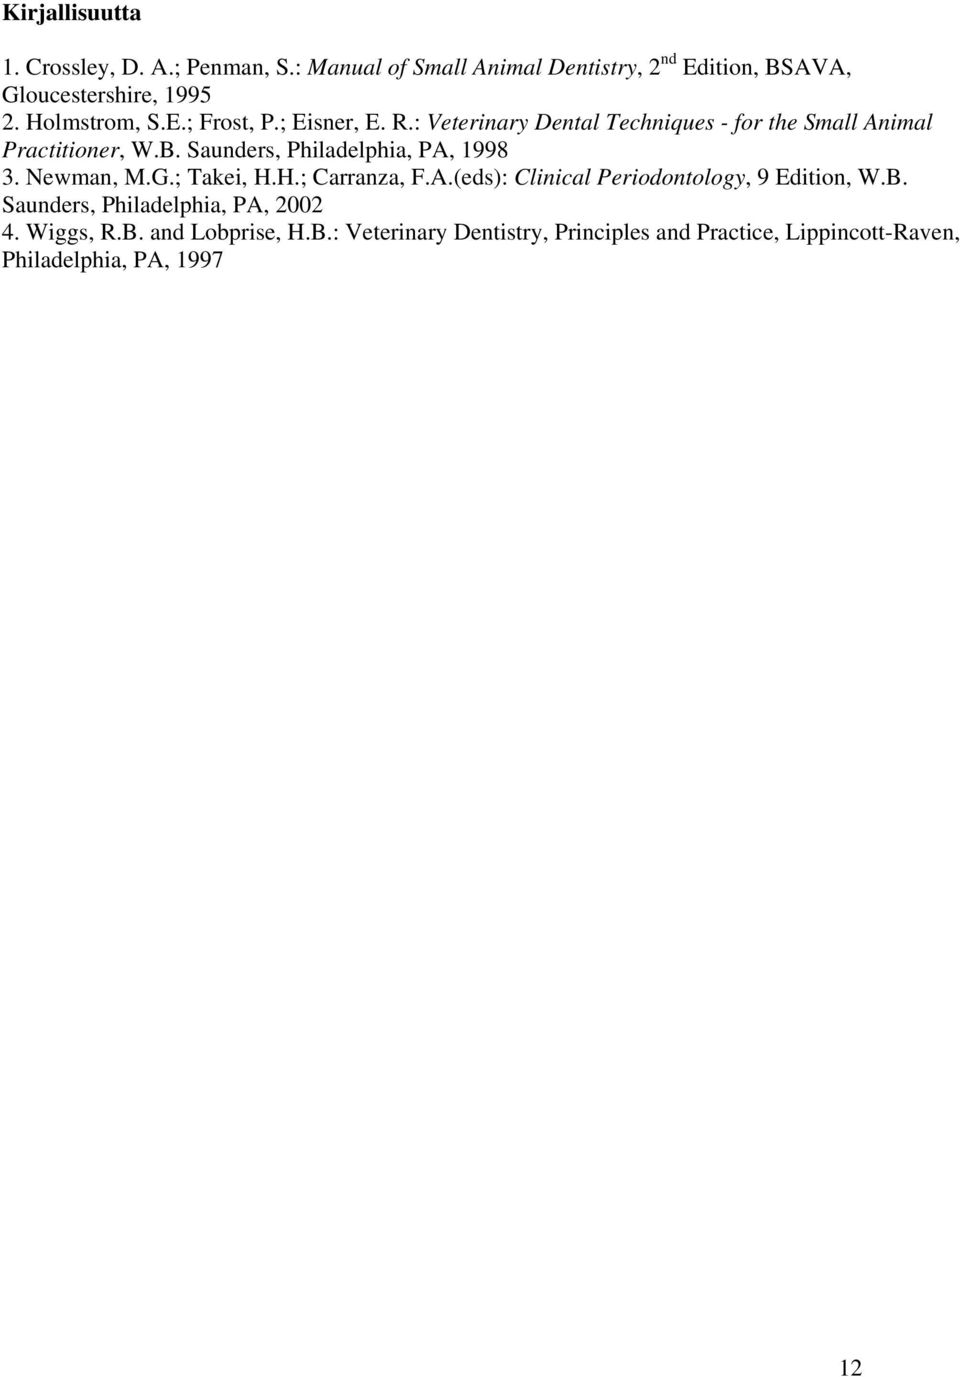 Saunders, Philadelphia, PA, 1998 3. Newman, M.G.; Takei, H.H.; Carranza, F.A.(eds): Clinical Periodontology, 9 Edition, W.B.